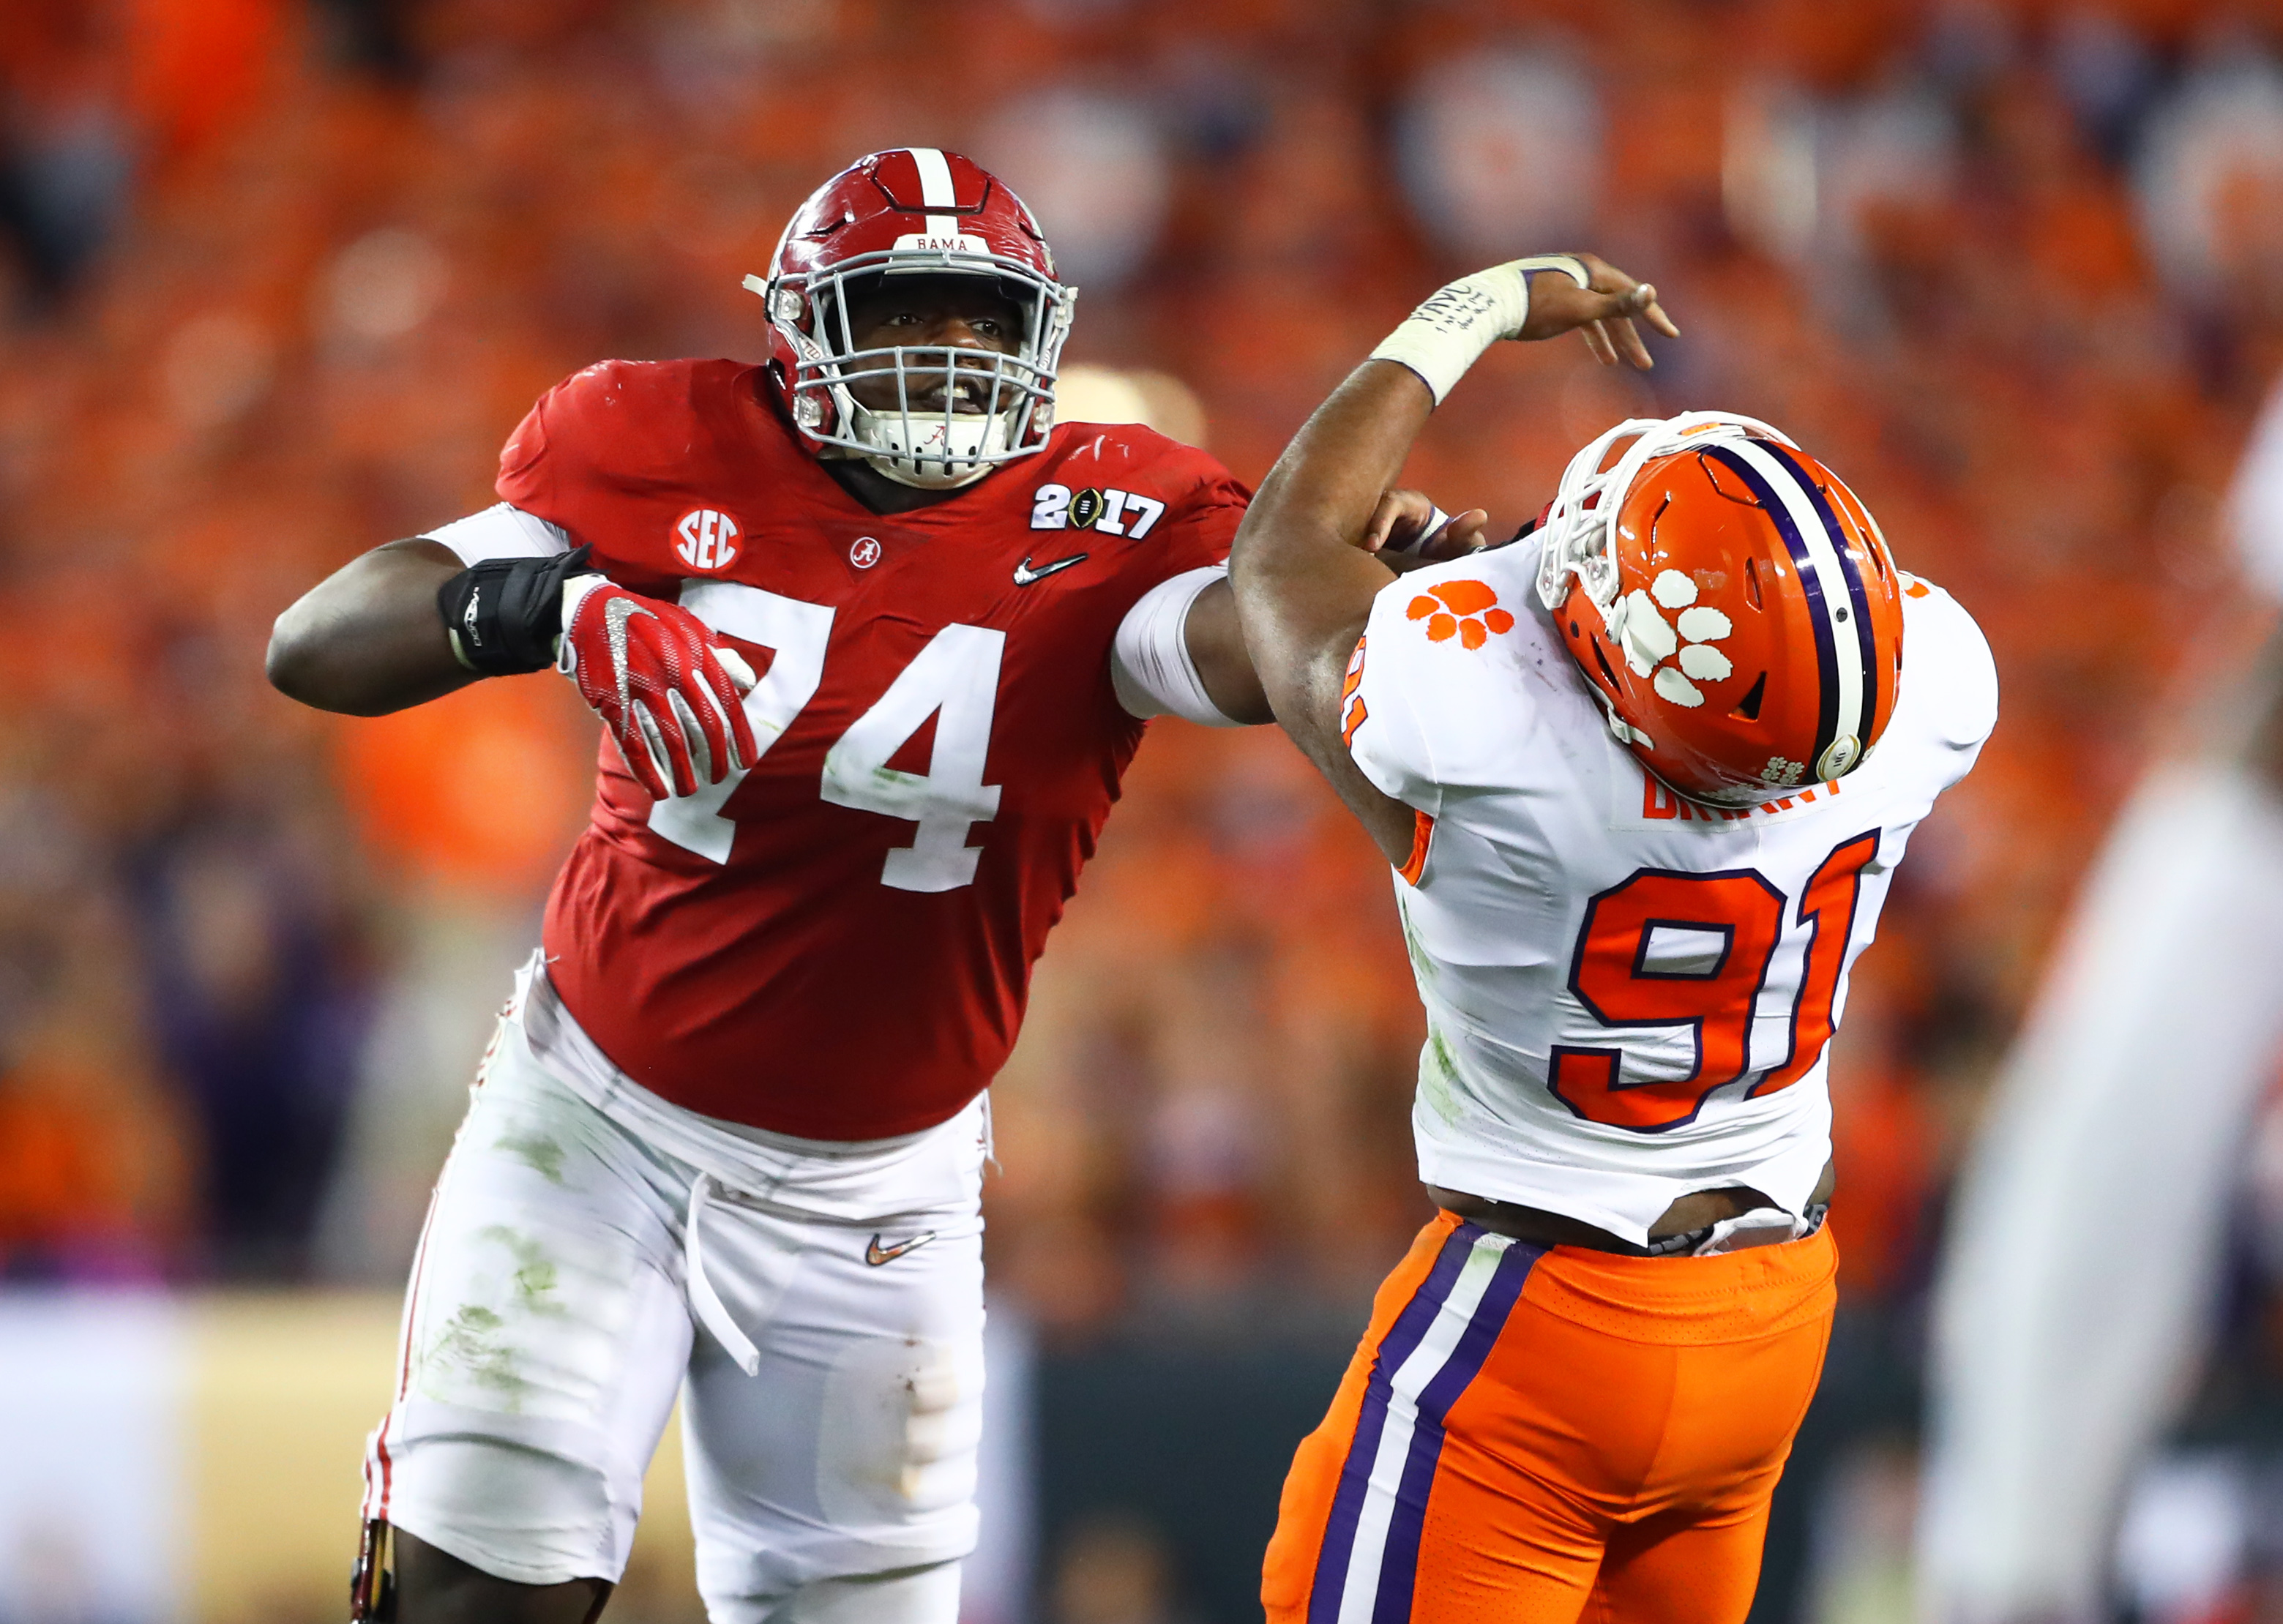 Jan 9, 2017; Tampa, FL, USA; Alabama Crimson Tide offensive lineman Cam Robinson (74) against Clemson Tigers defensive end Austin Bryant (91) in the 2017 College Football Playoff National Championship Game at Raymond James Stadium. Mandatory Credit: Mark J. Rebilas-USA TODAY Sports